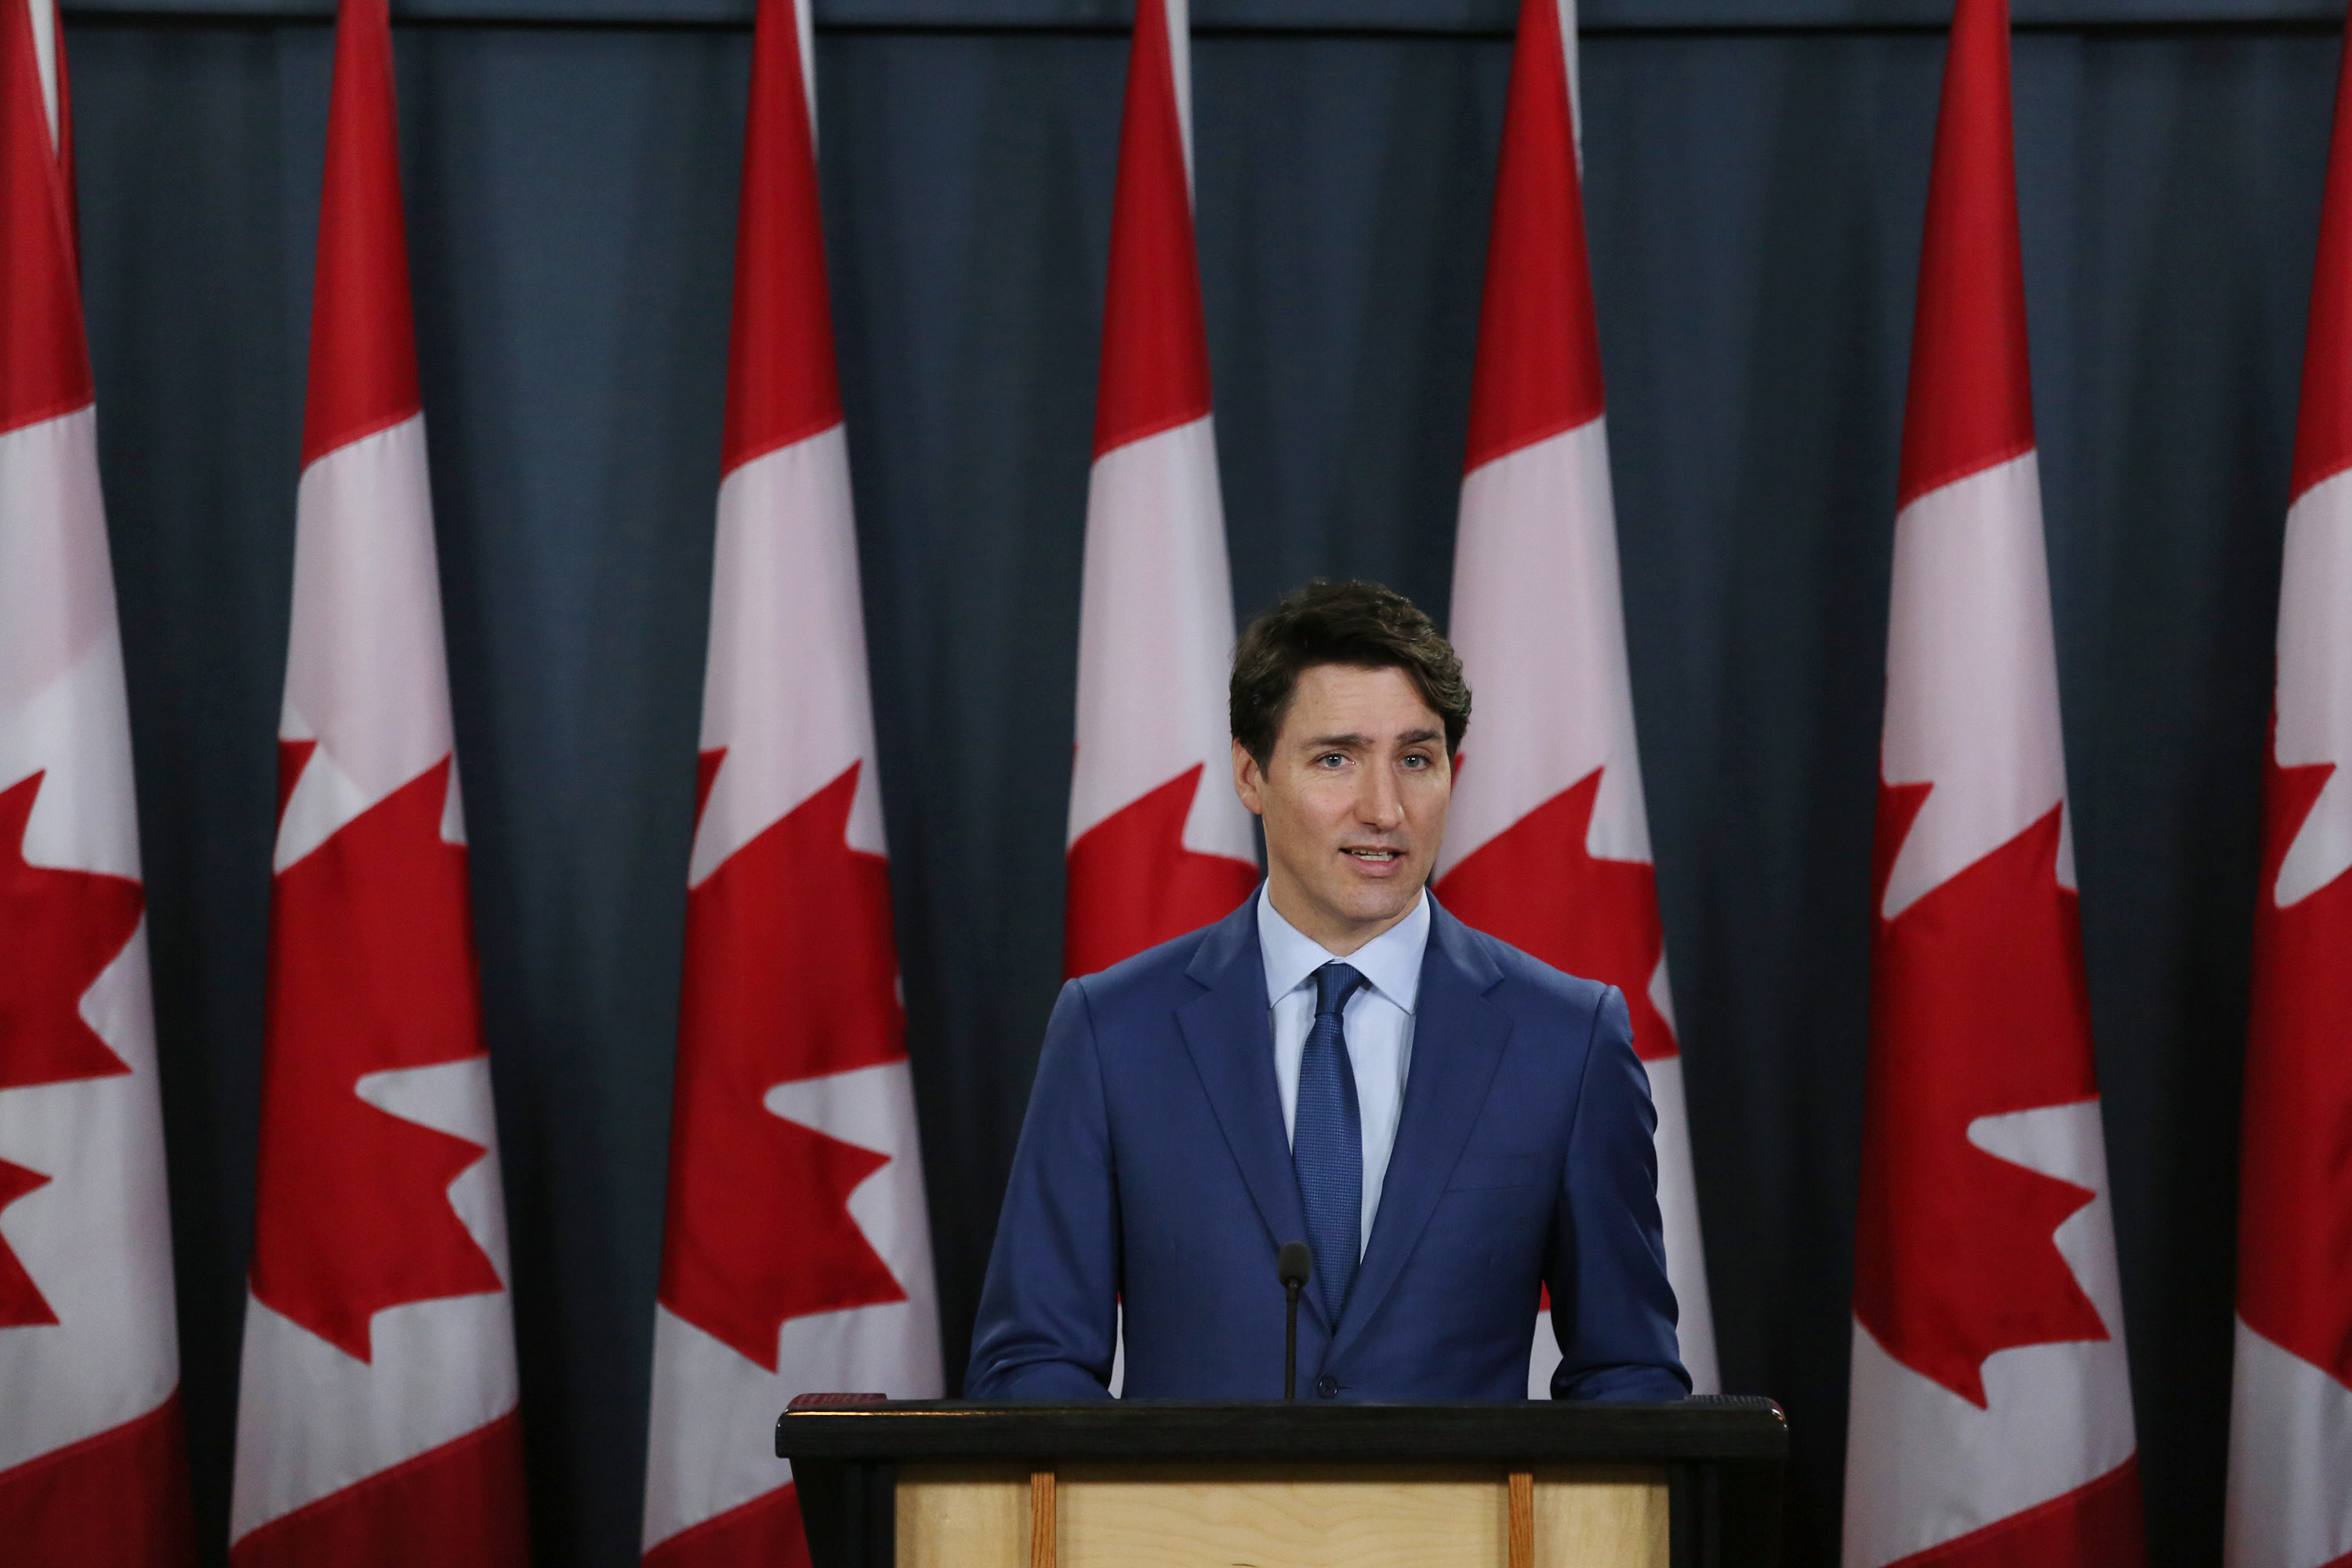 Canadian Prime Minister Justin Trudeau attends a news conference in Ottawa on March 7, 2019.